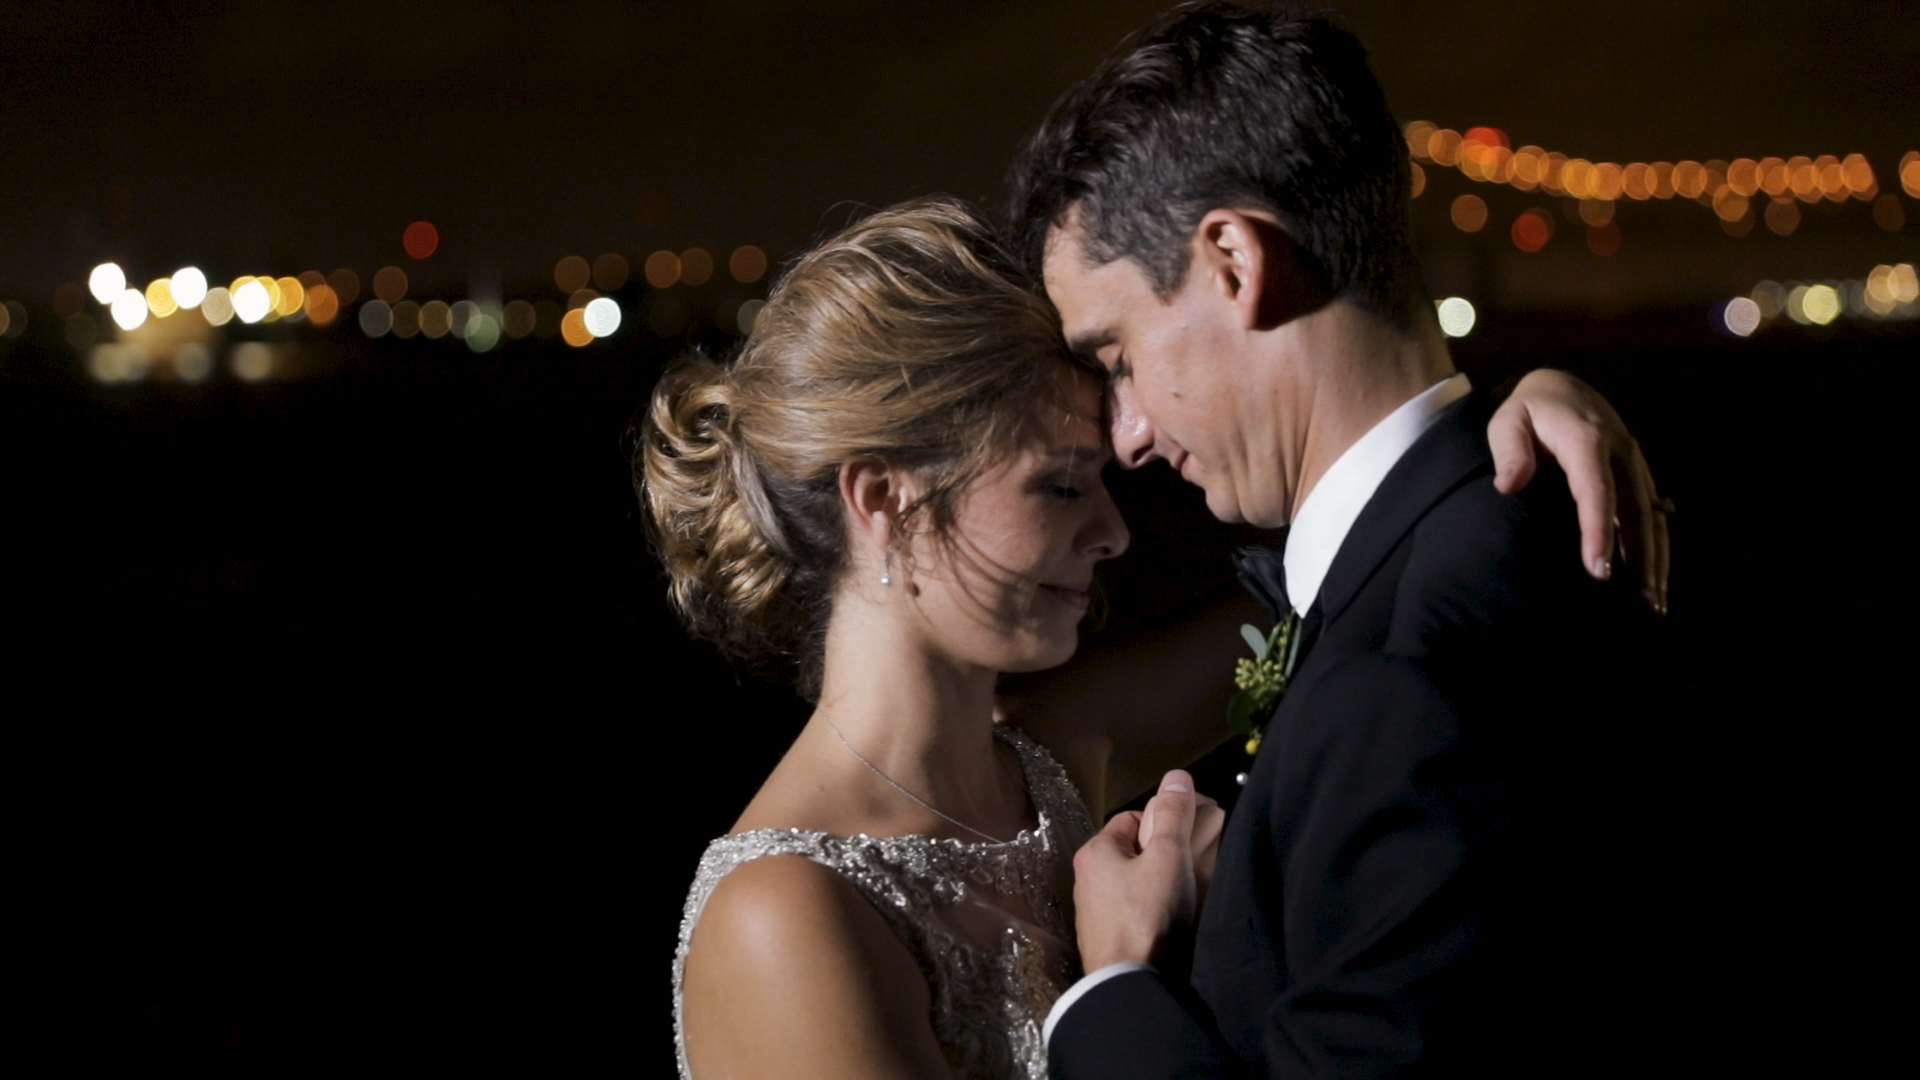 New Orleans Wedding Videography_Marianne and Clark_Wedding picture pose